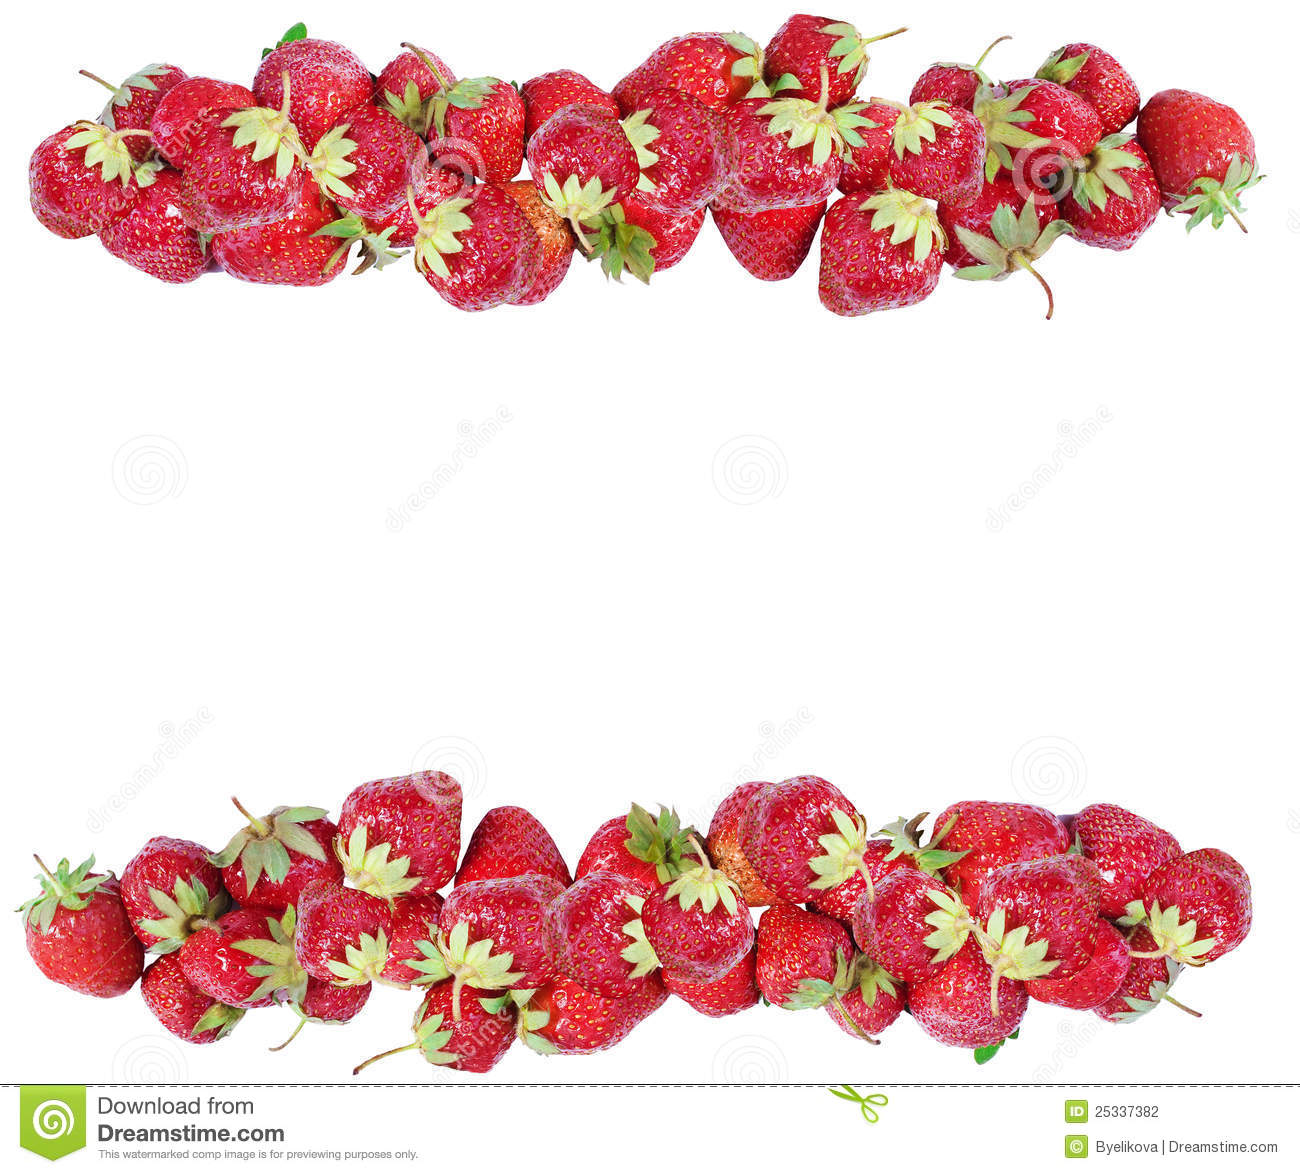 Strawberry Frame Stock Photography - Image: 25337382